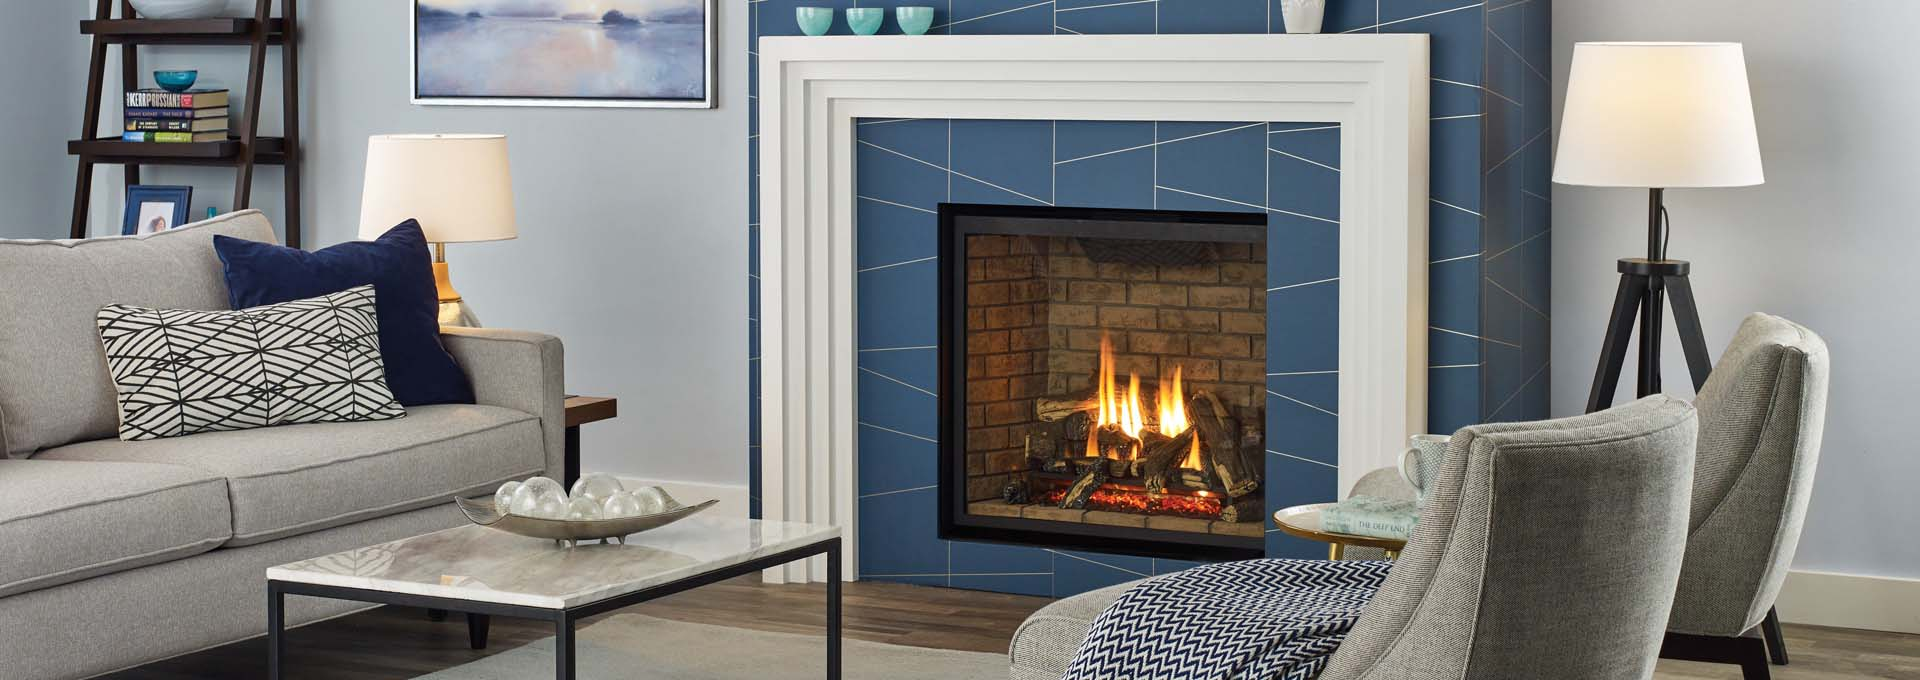 11 Reasons to Add a Gas Fireplace to Your Home